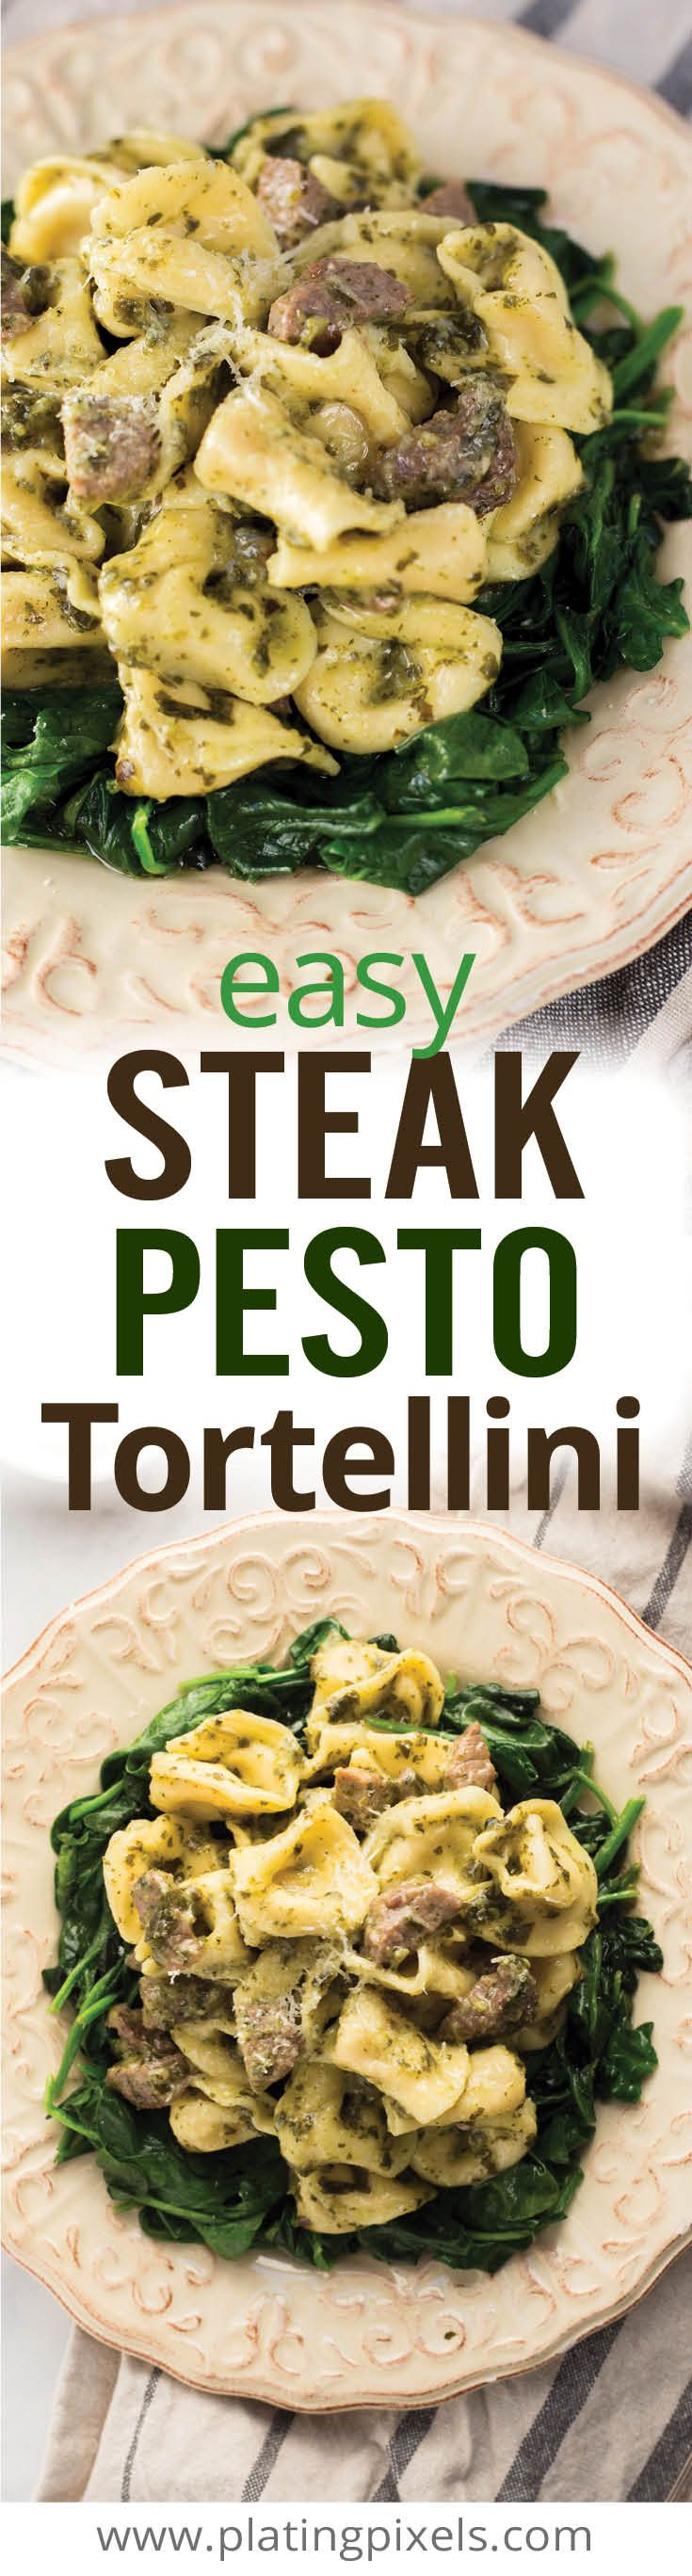 Steak Pesto Tortellini Pasta makes an easy weeknight dinner recipe. Cheese filled tortellini, tender steak, garlic and fresh spinach coated in pesto sauce. A quick recipe in less than 20 minutes. [ad] #Buitoni #CloserToDinner @buitoniusa - www.platingpixels.com